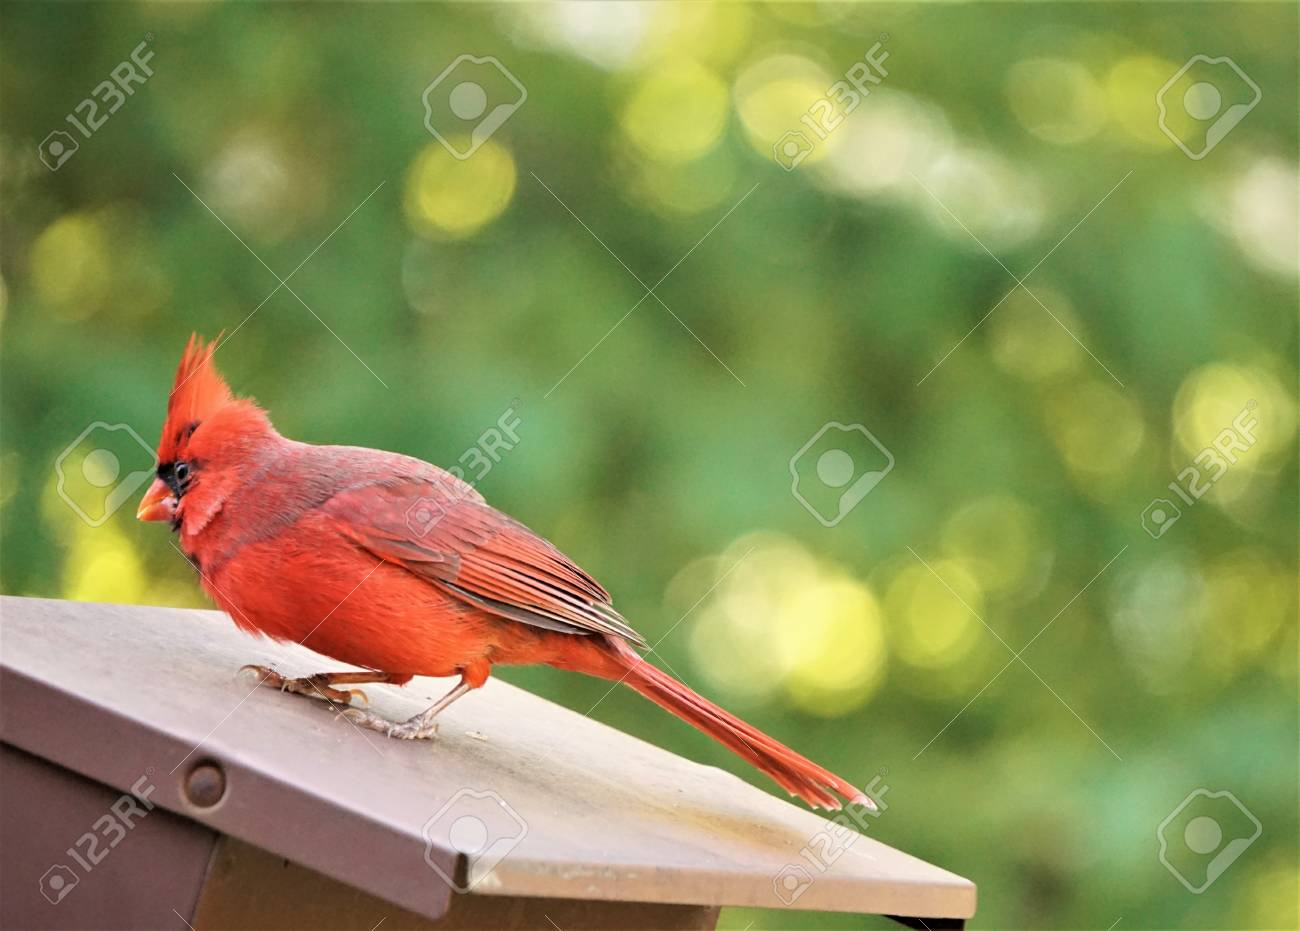 A Male Cardinal Bird Is On The Roof Of Bird Feeder Enjoys Watching On The  Blurry